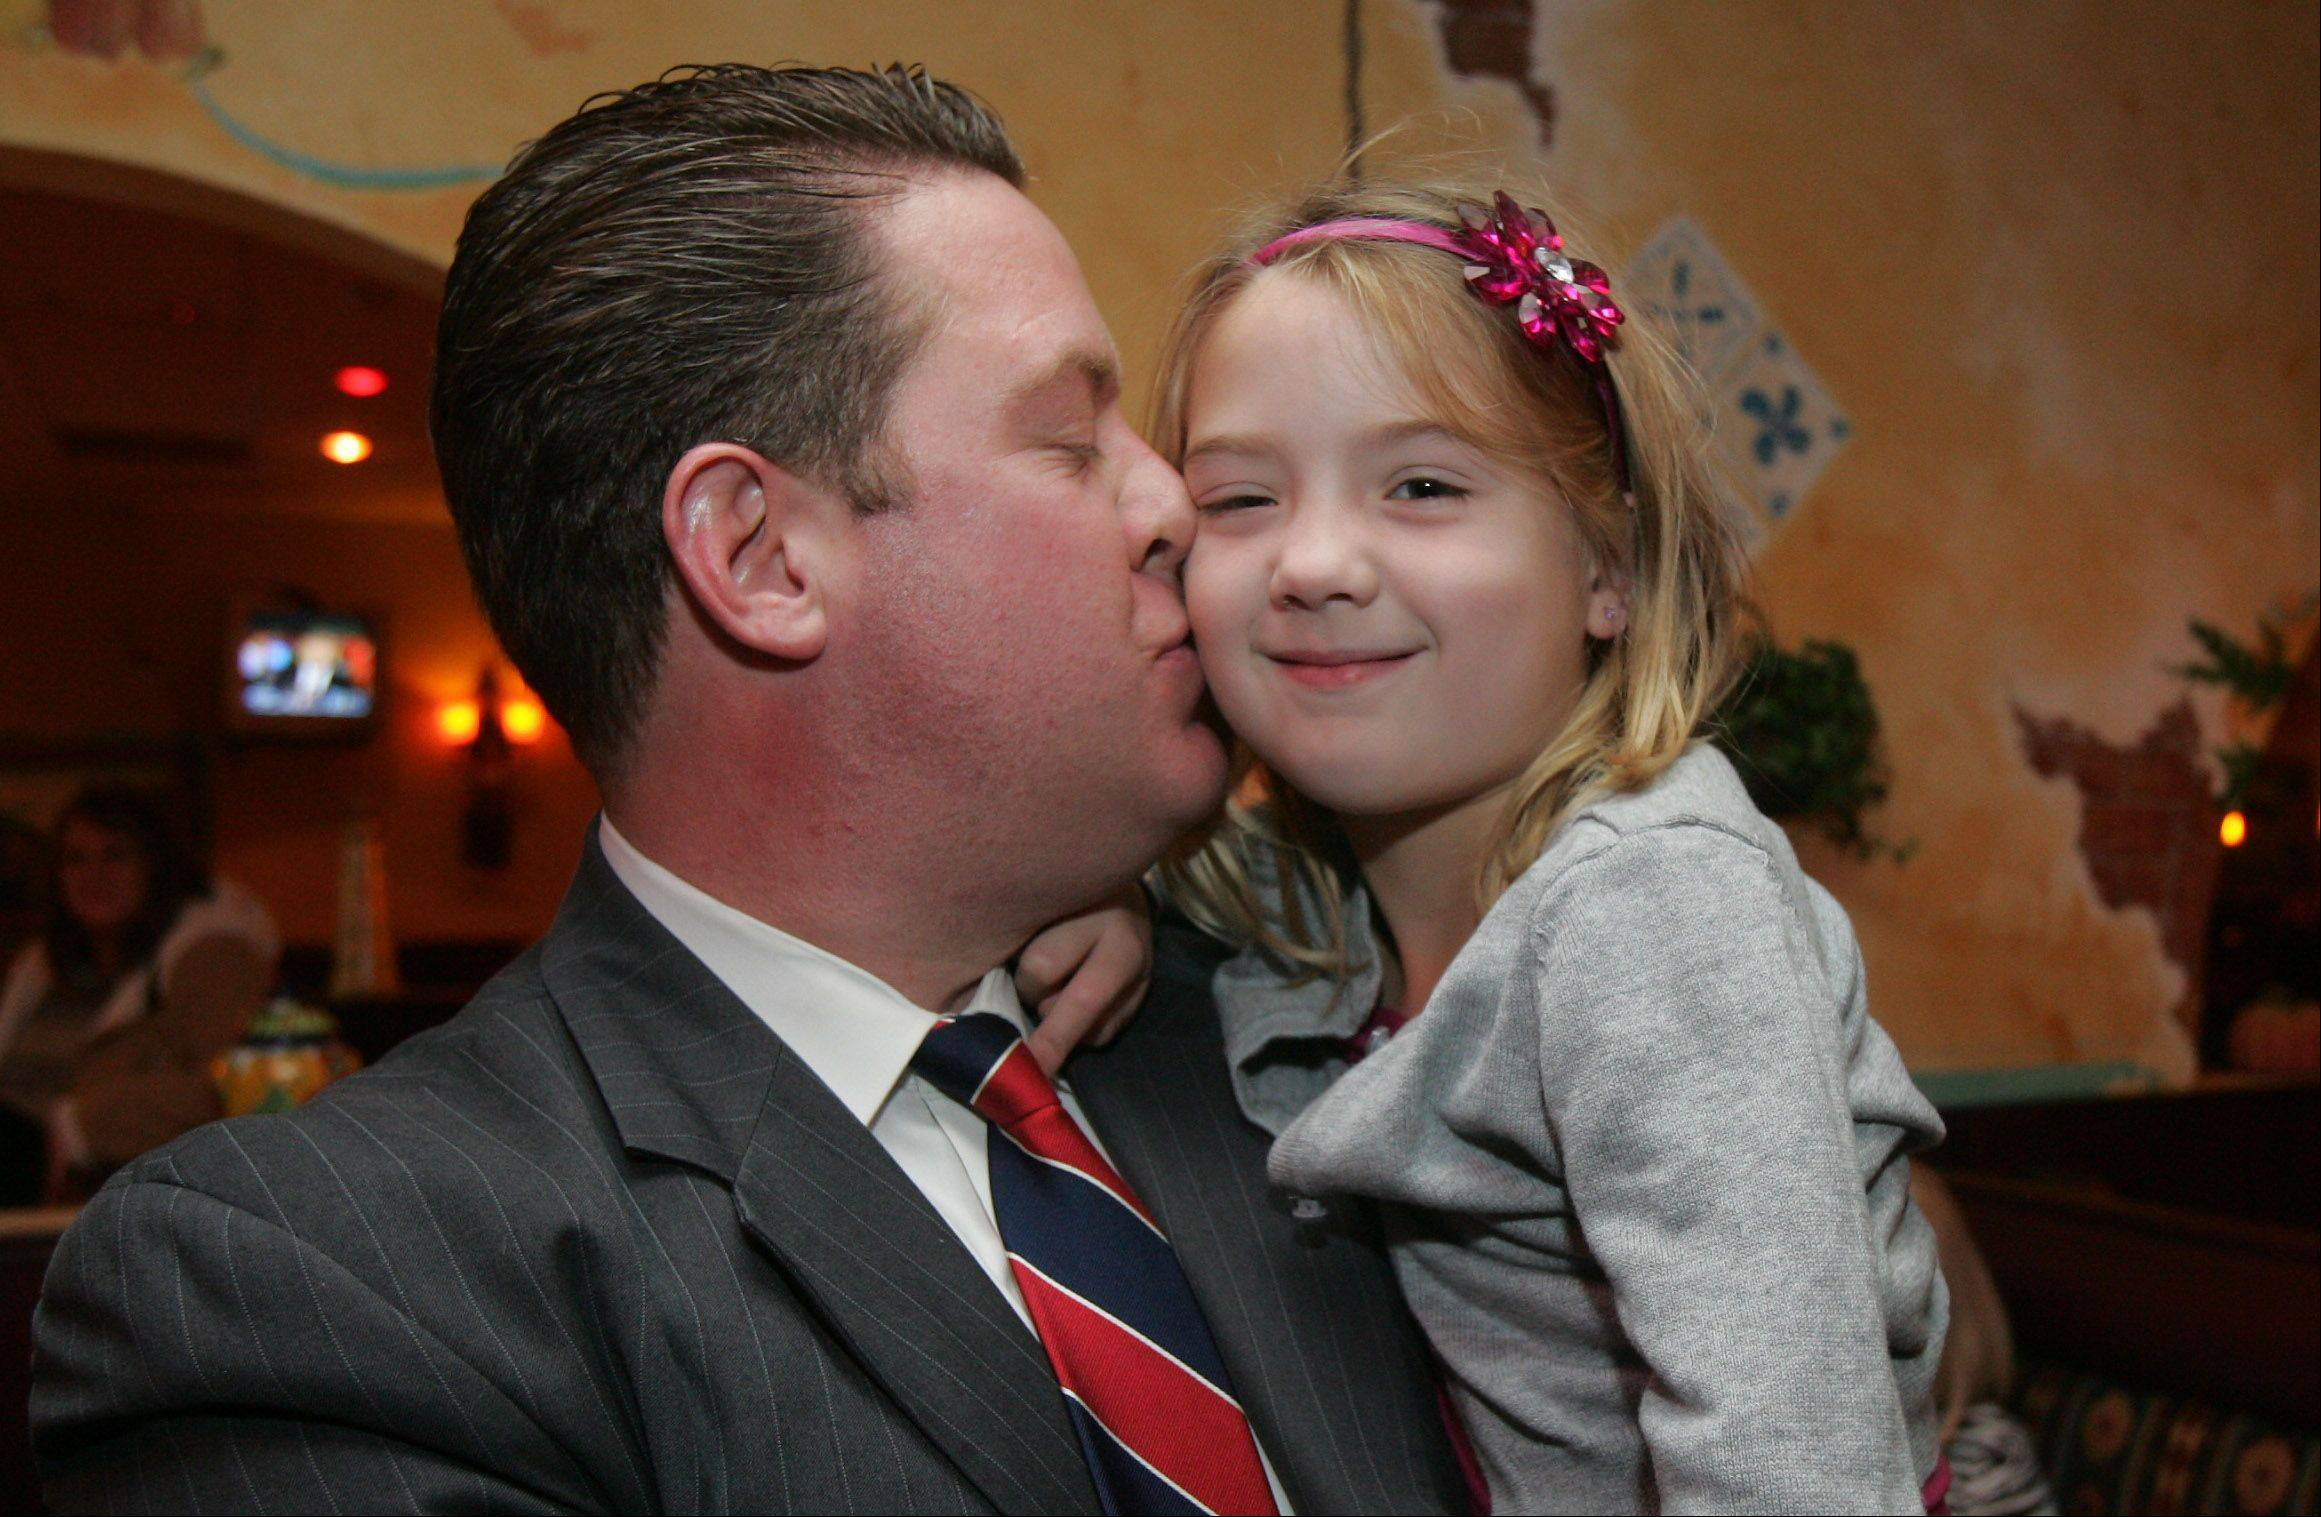 Republican candidate Mike Nerheim kisses his daughter, Grace, 5, as he watches results coming in at Tacos El Norte in Gurnee Tuesday in the Lake County State's Attorney's race.